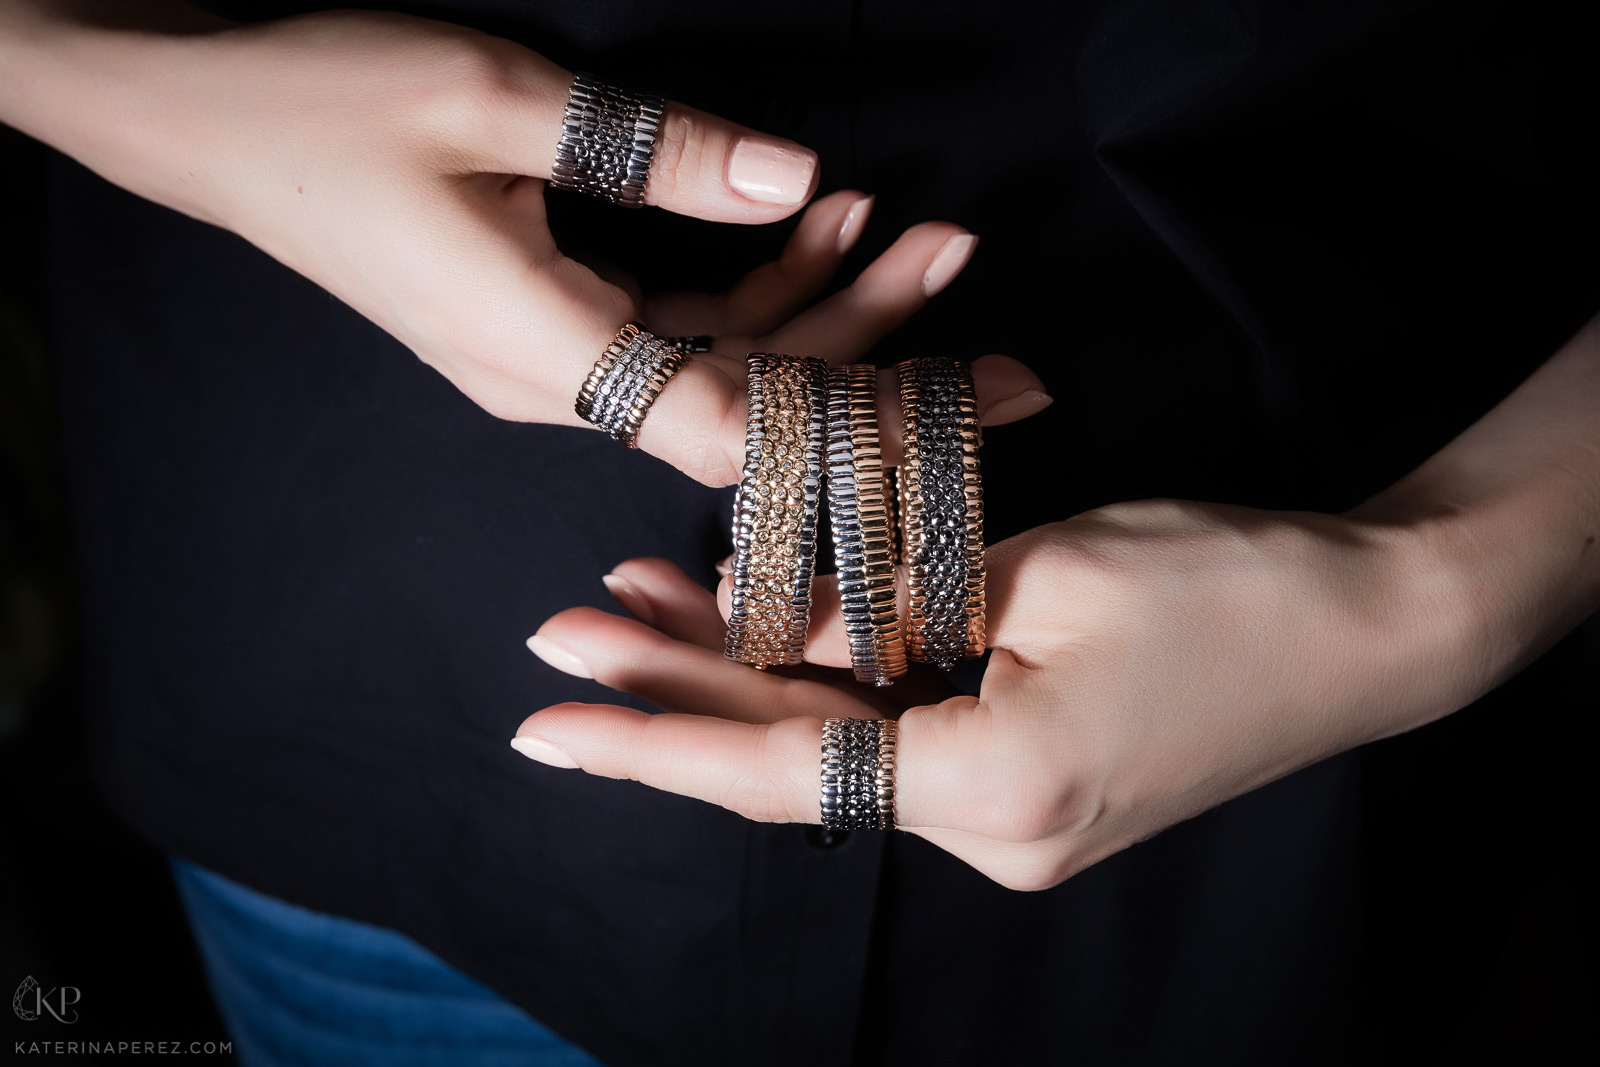 Just Revolution Skin bracelets and rings by Julien Ryad Sahyoun. Photo by Simon Martner